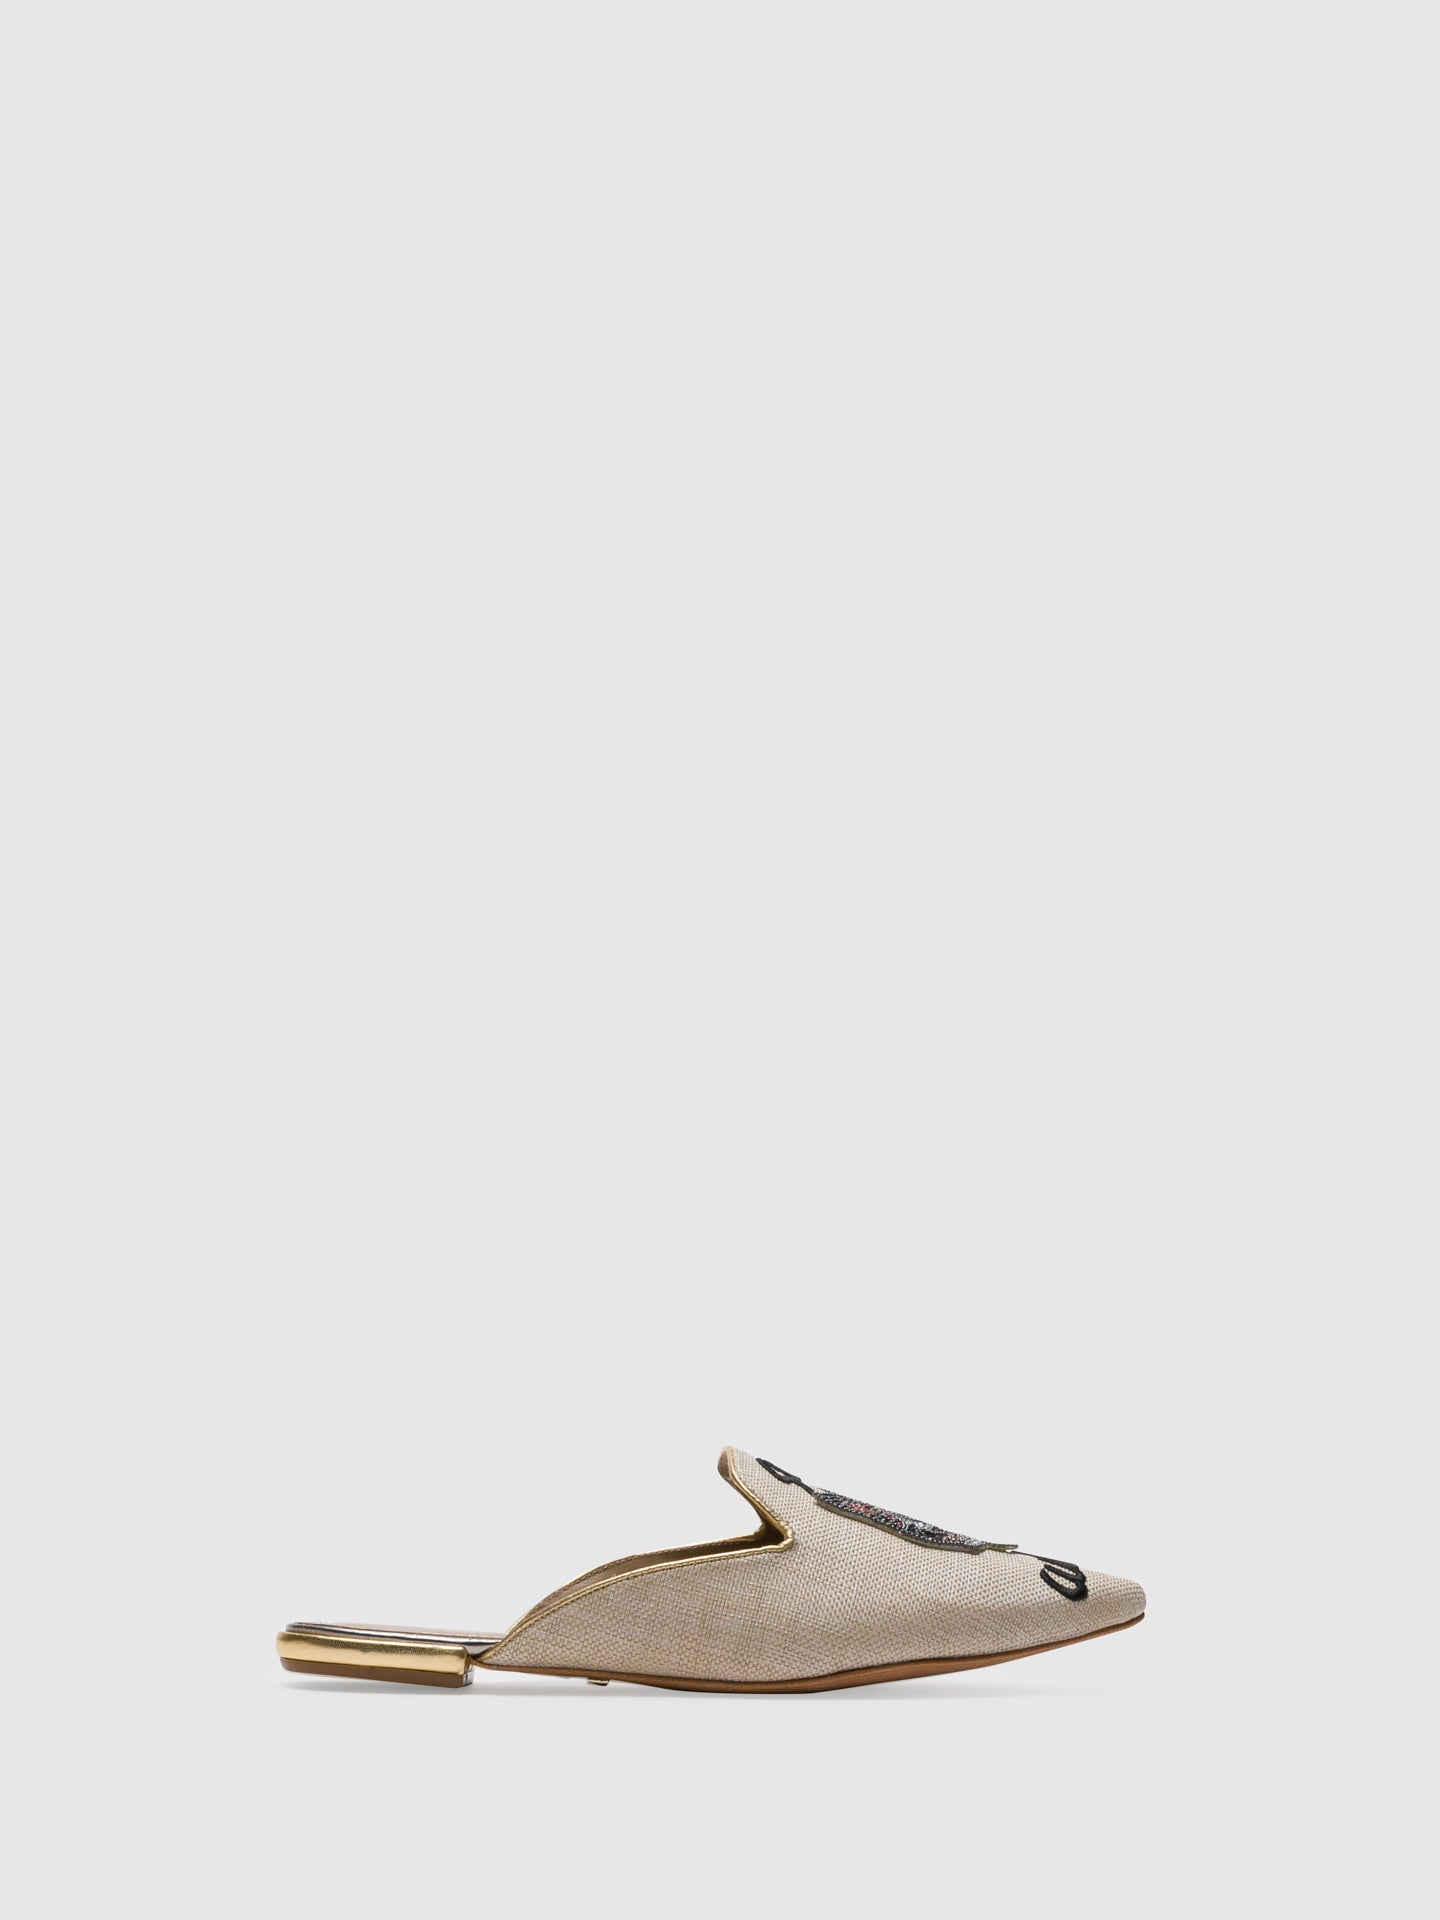 PARODI PASSION BlanchedAlmond	 Pointed Toe Mules